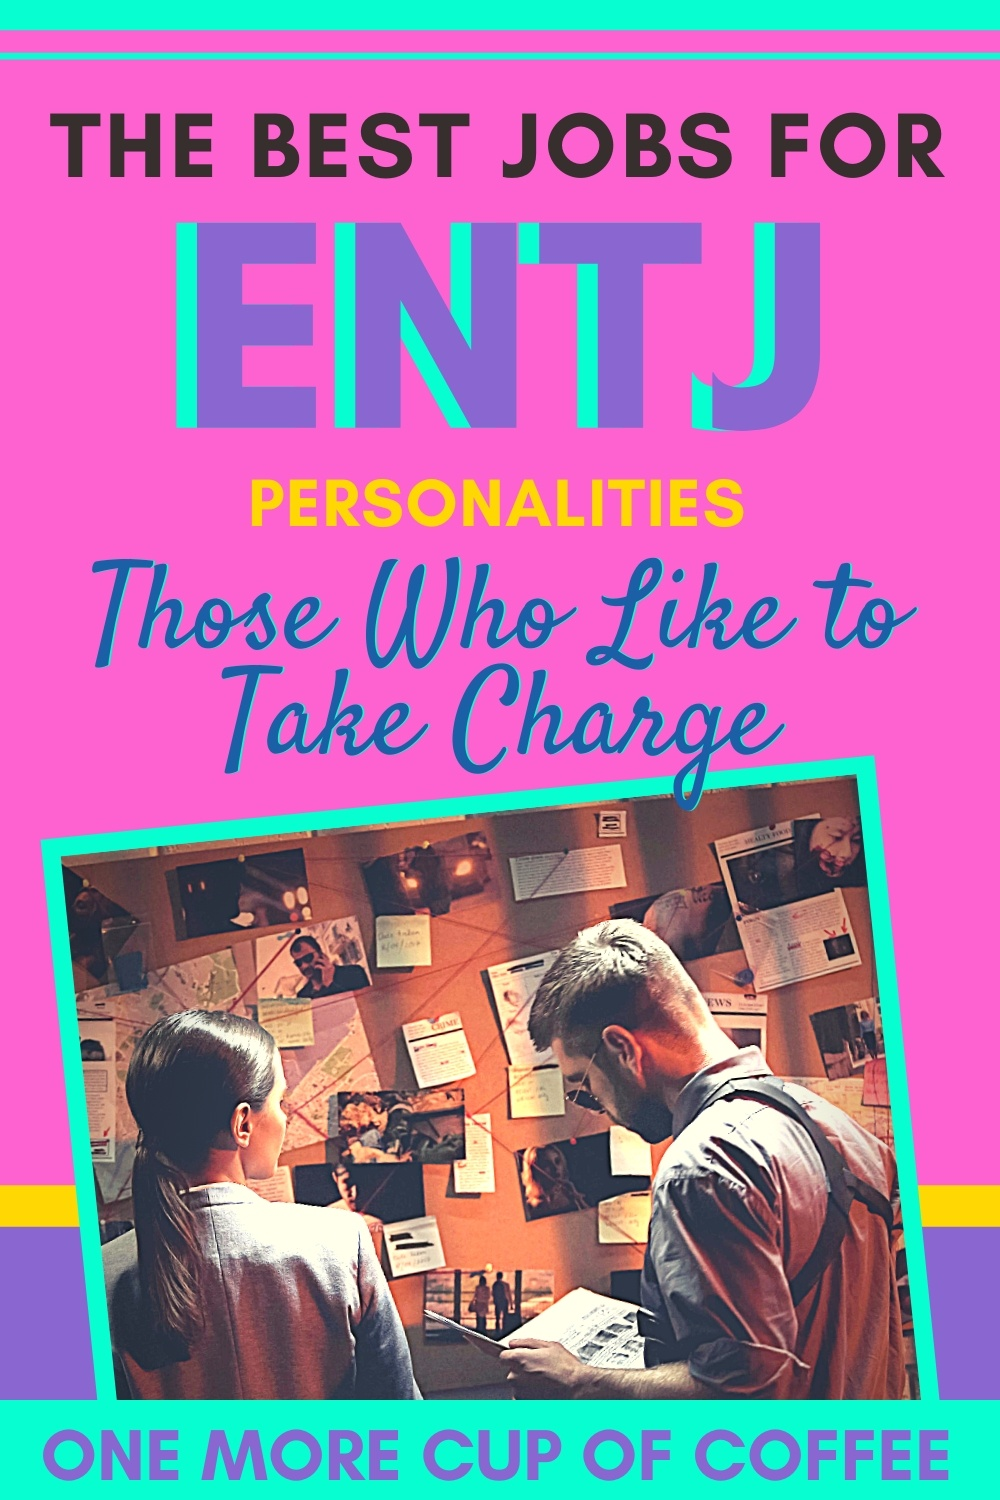 2 detectives in front of a cork board working on a case representing jobs for ENTJ personalities